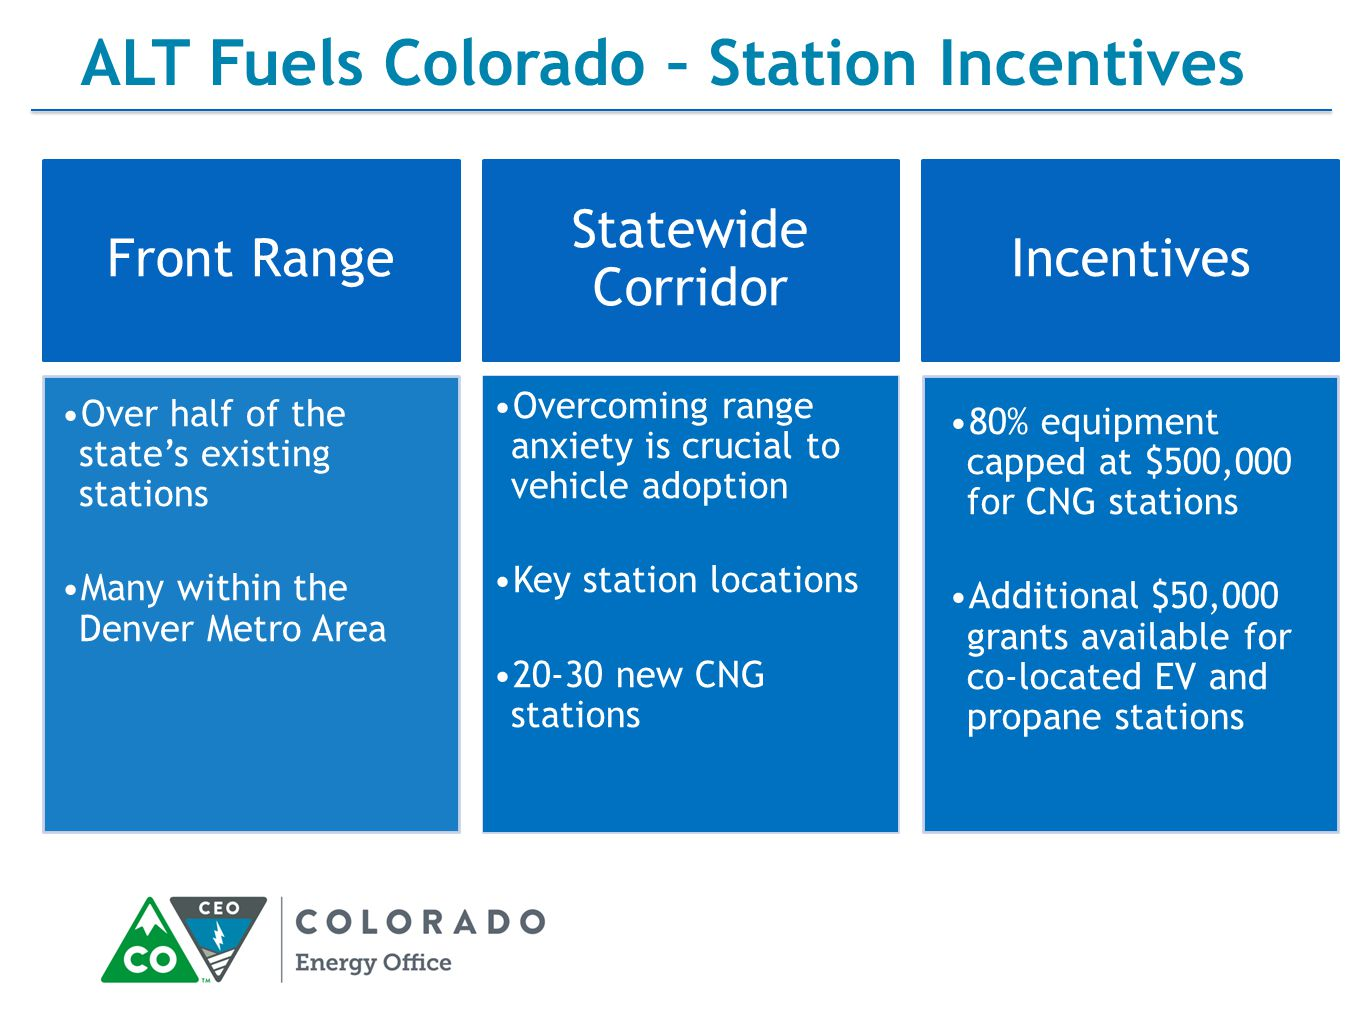 Front Range Over half of the state's existing stations Many within the Denver Metro Area Statewide Corridor Overcoming range anxiety is crucial to vehicle adoption Key station locations 20-30 new CNG stations Incentives 80% equipment capped at $500,000 for CNG stations Additional $50,000 grants available for co-located EV and propane stations ALT Fuels Colorado – Station Incentives